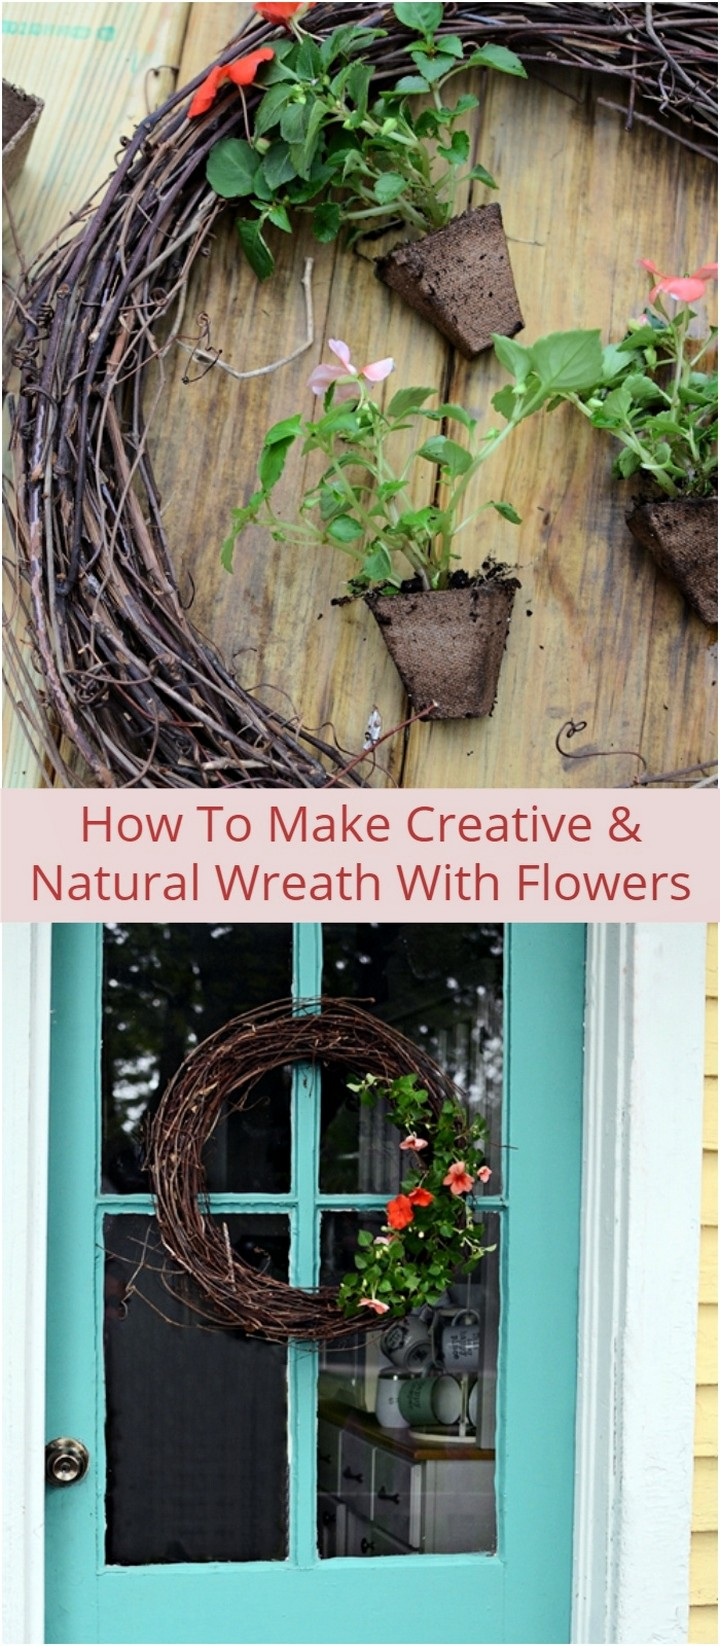 How To Make Creative Natural Wreath With Flowers